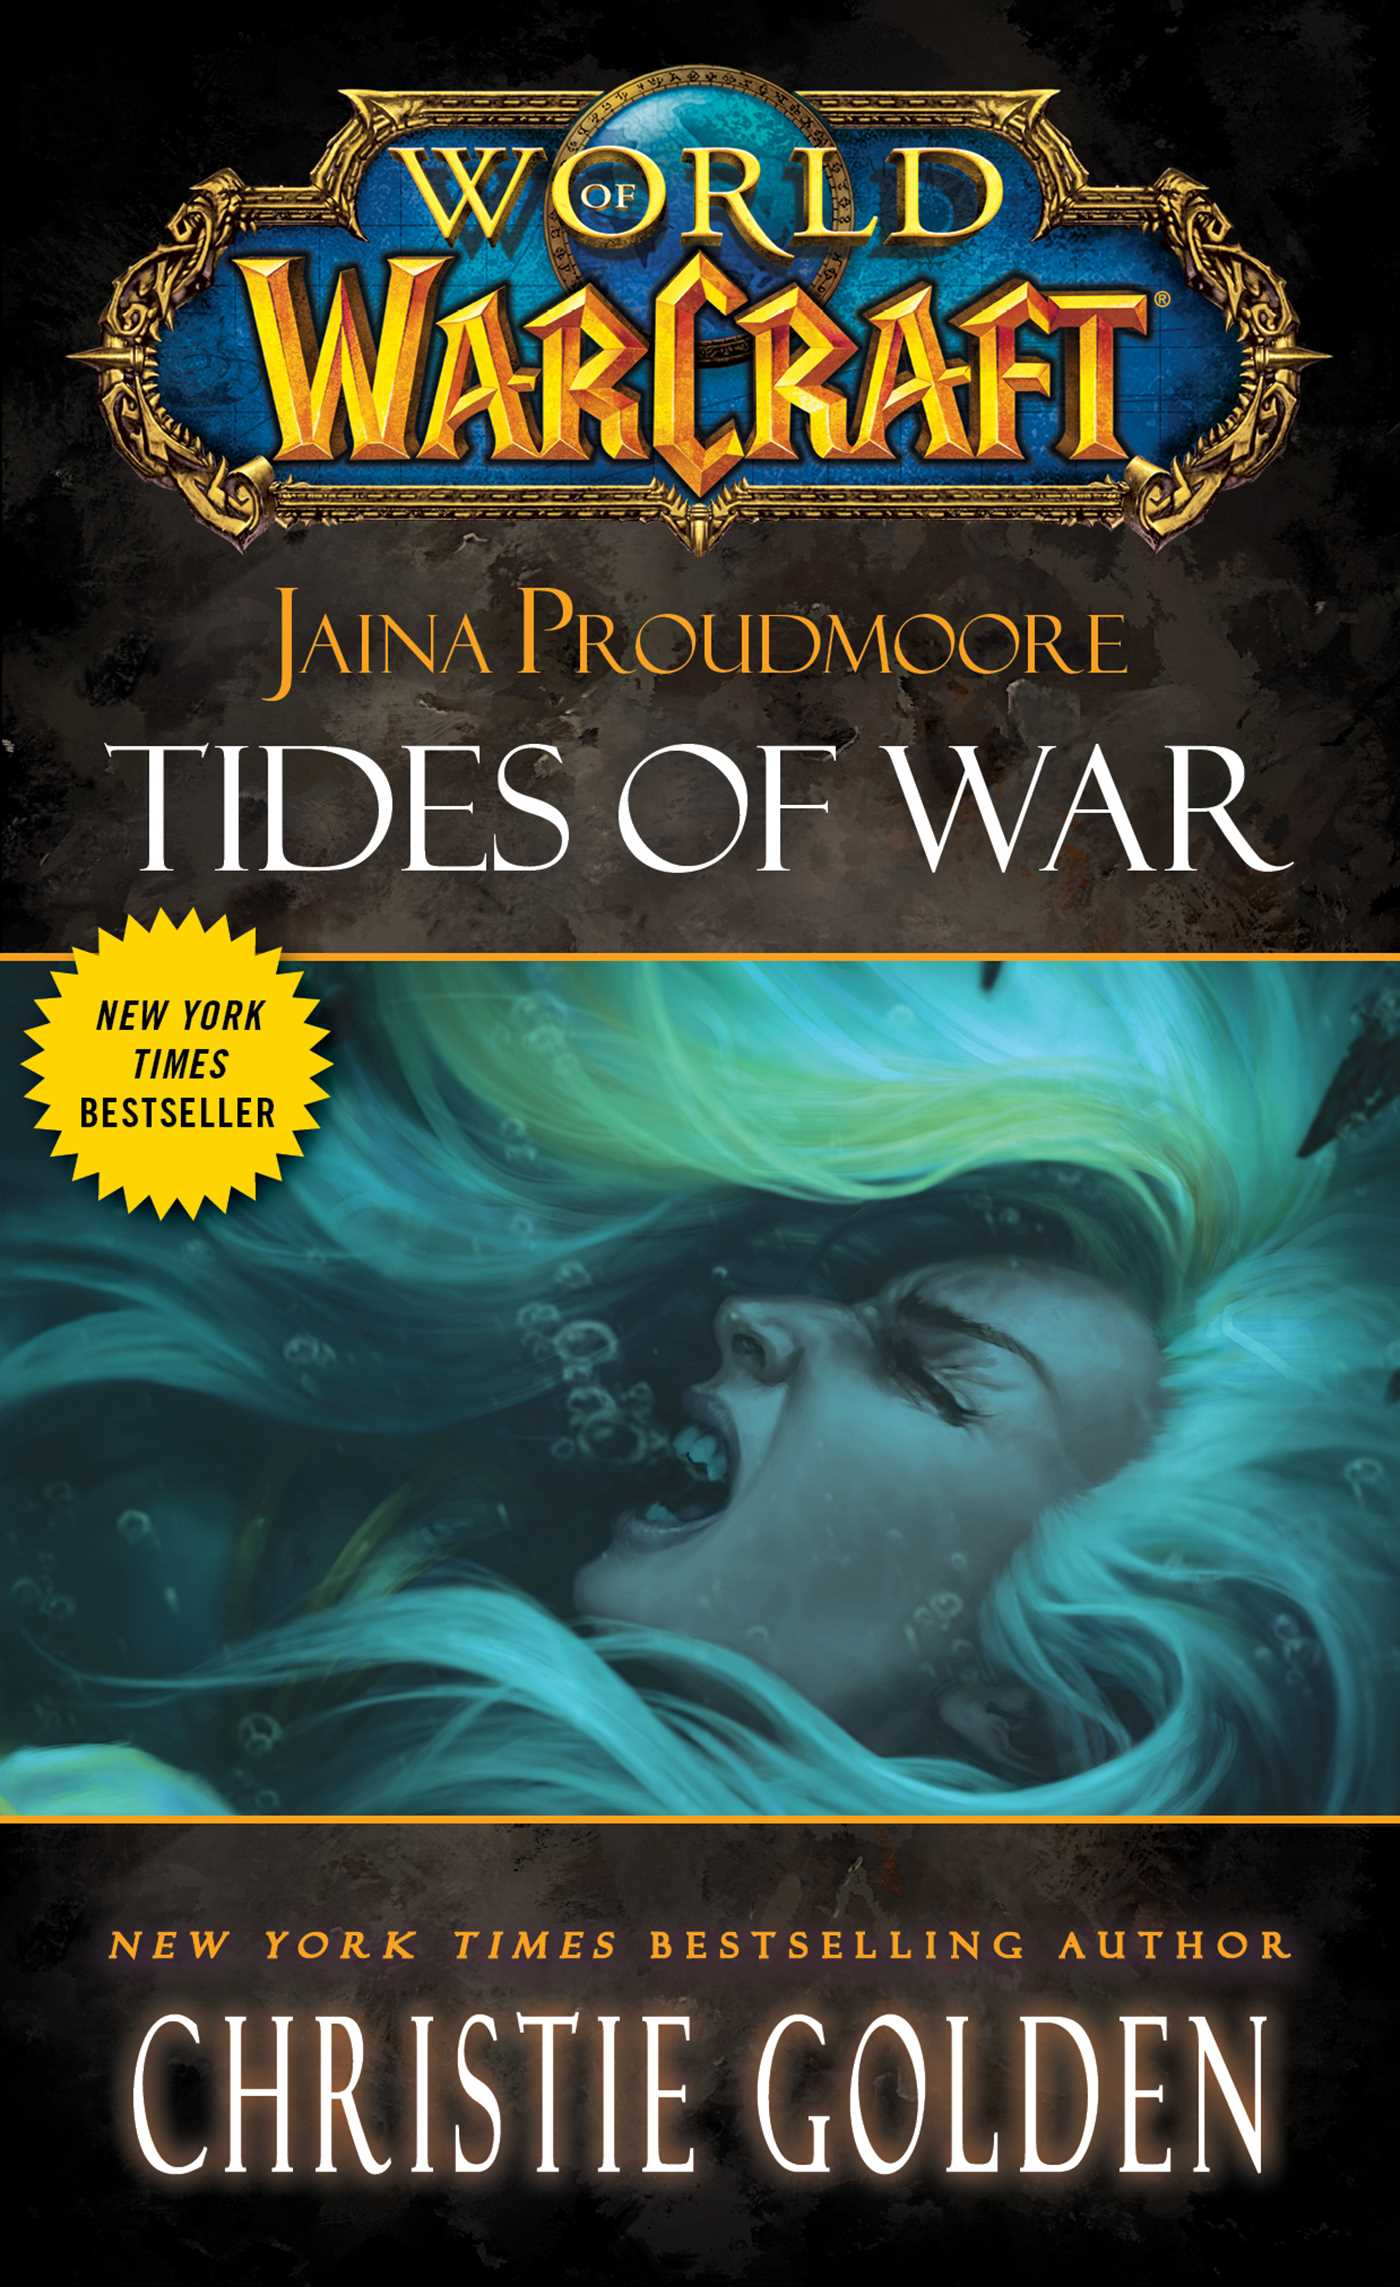 World of warcraft jaina proudmoore tides of war 9781439171448 hr